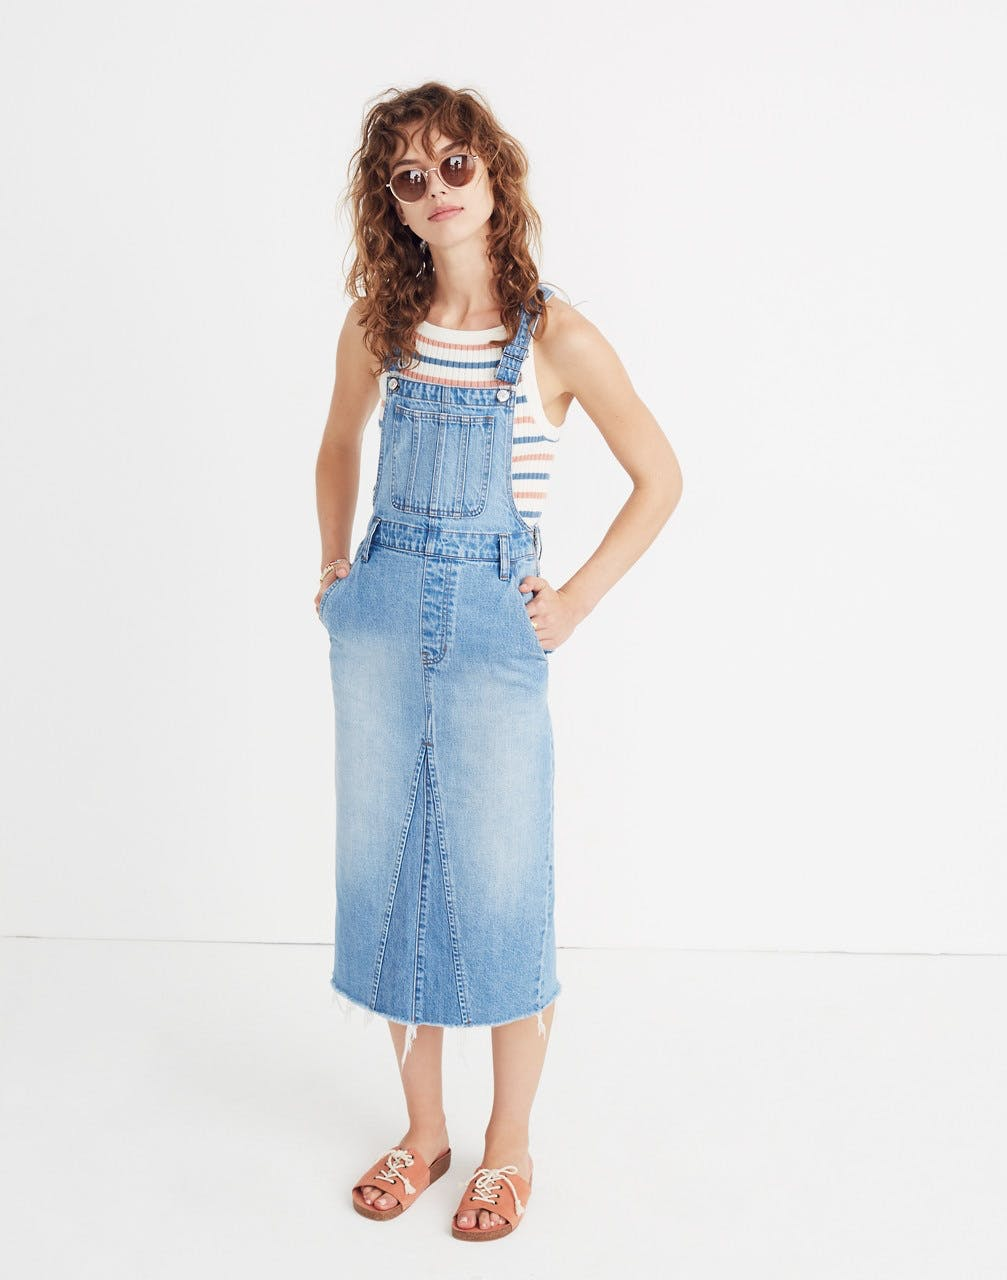 The Reconstructed Skirt Overalls